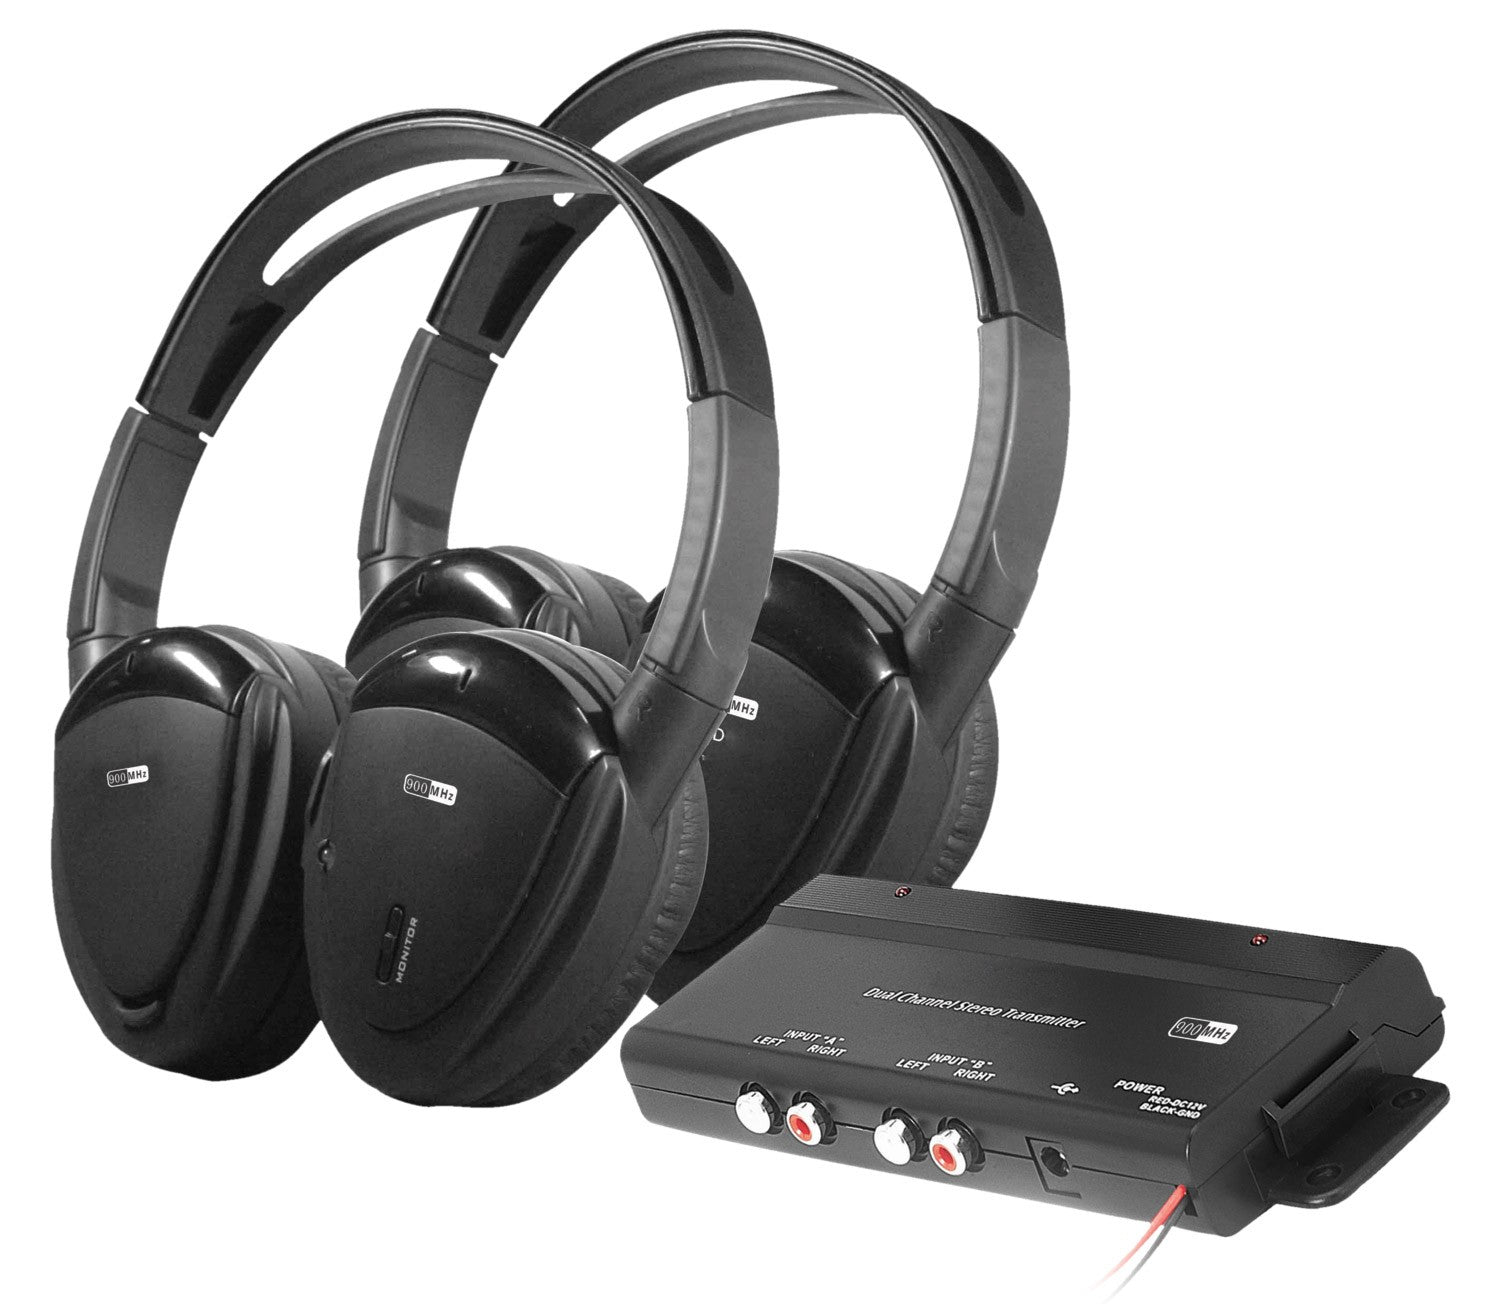 Farenheit RF Headphone System - HP-902RFT 900 Mz Folding Wireless Dual Channel RF Headphone Package featuring Two Headphones and a Transmitter